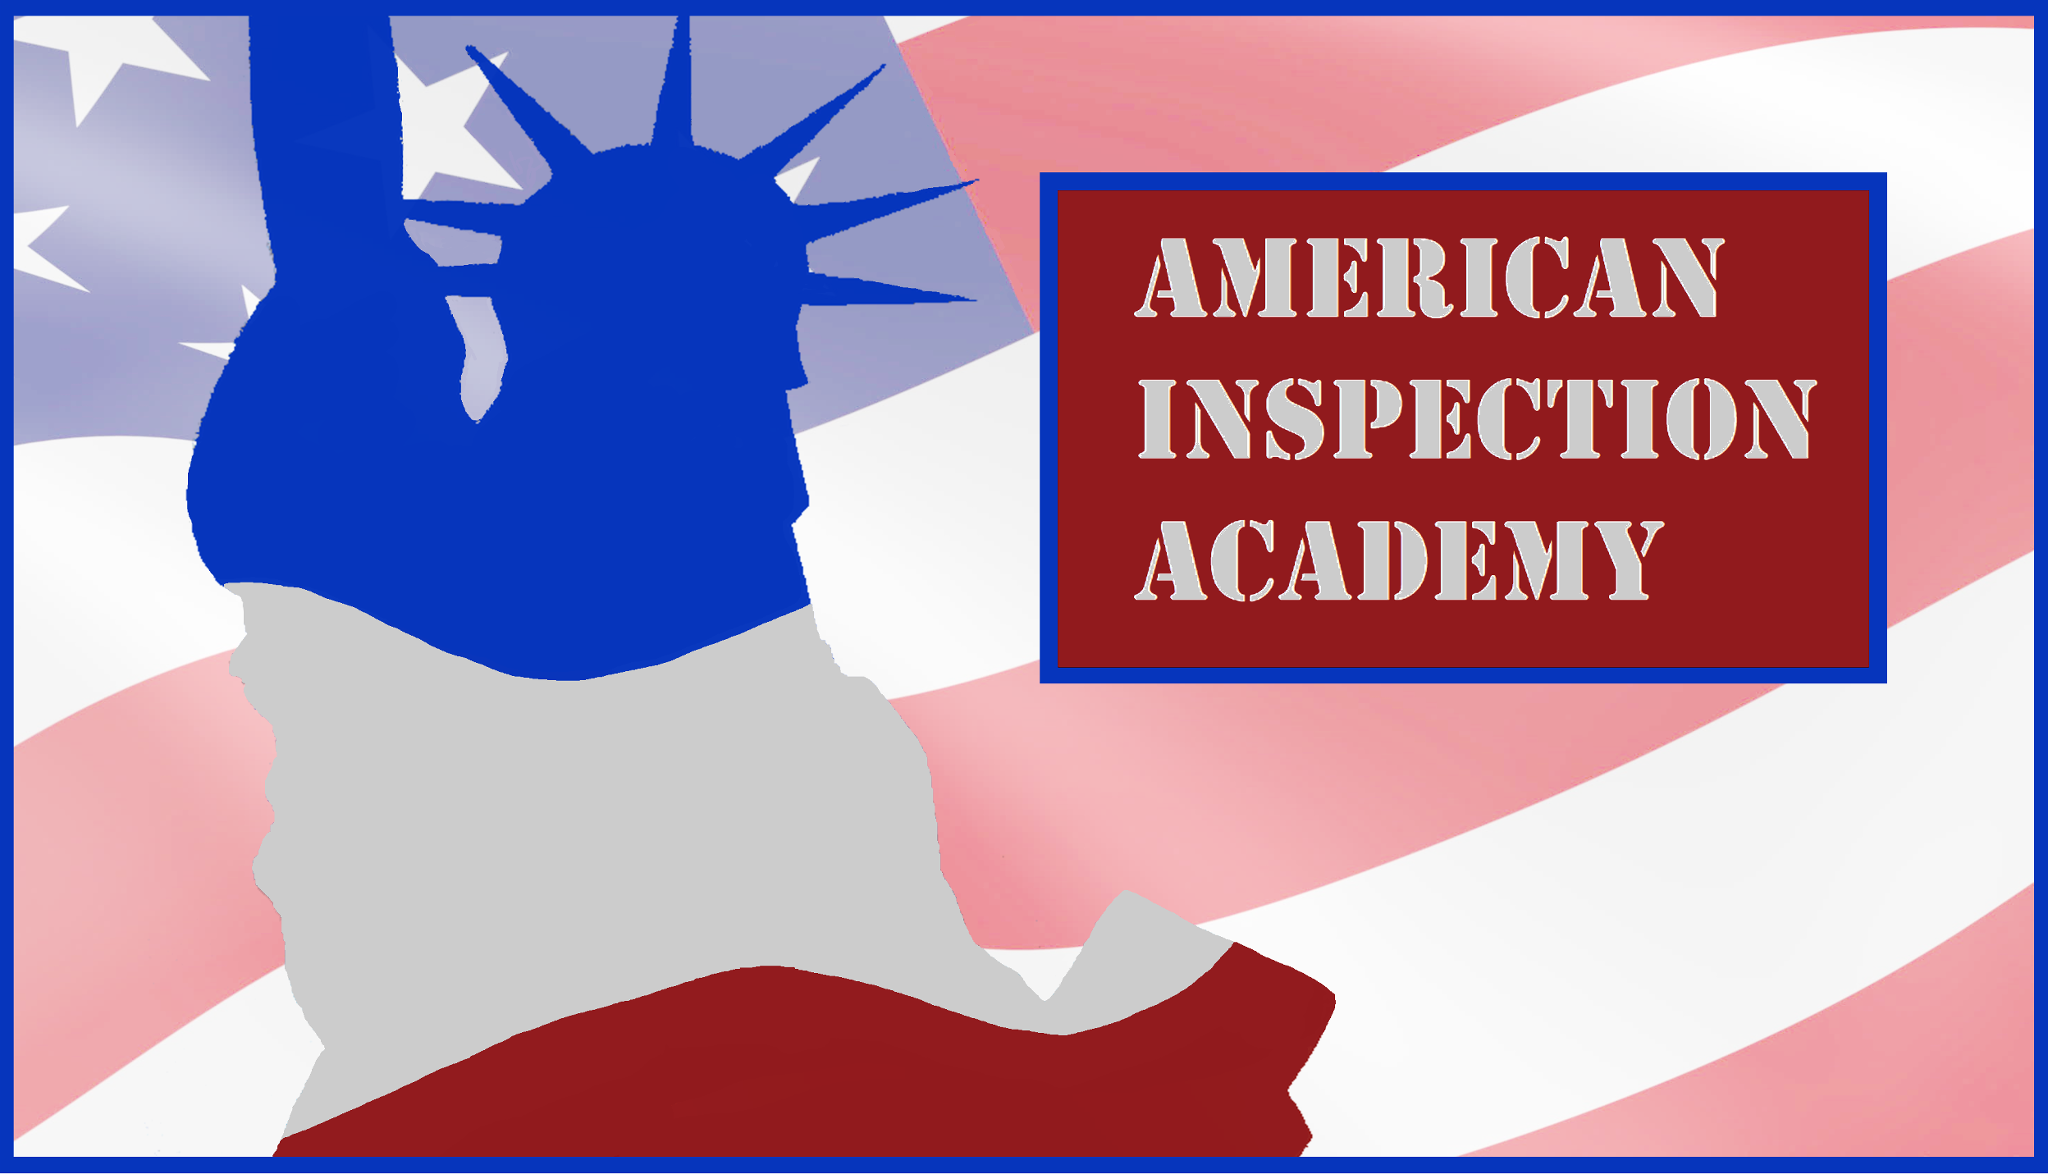 american inspection academy home inspection training school logo